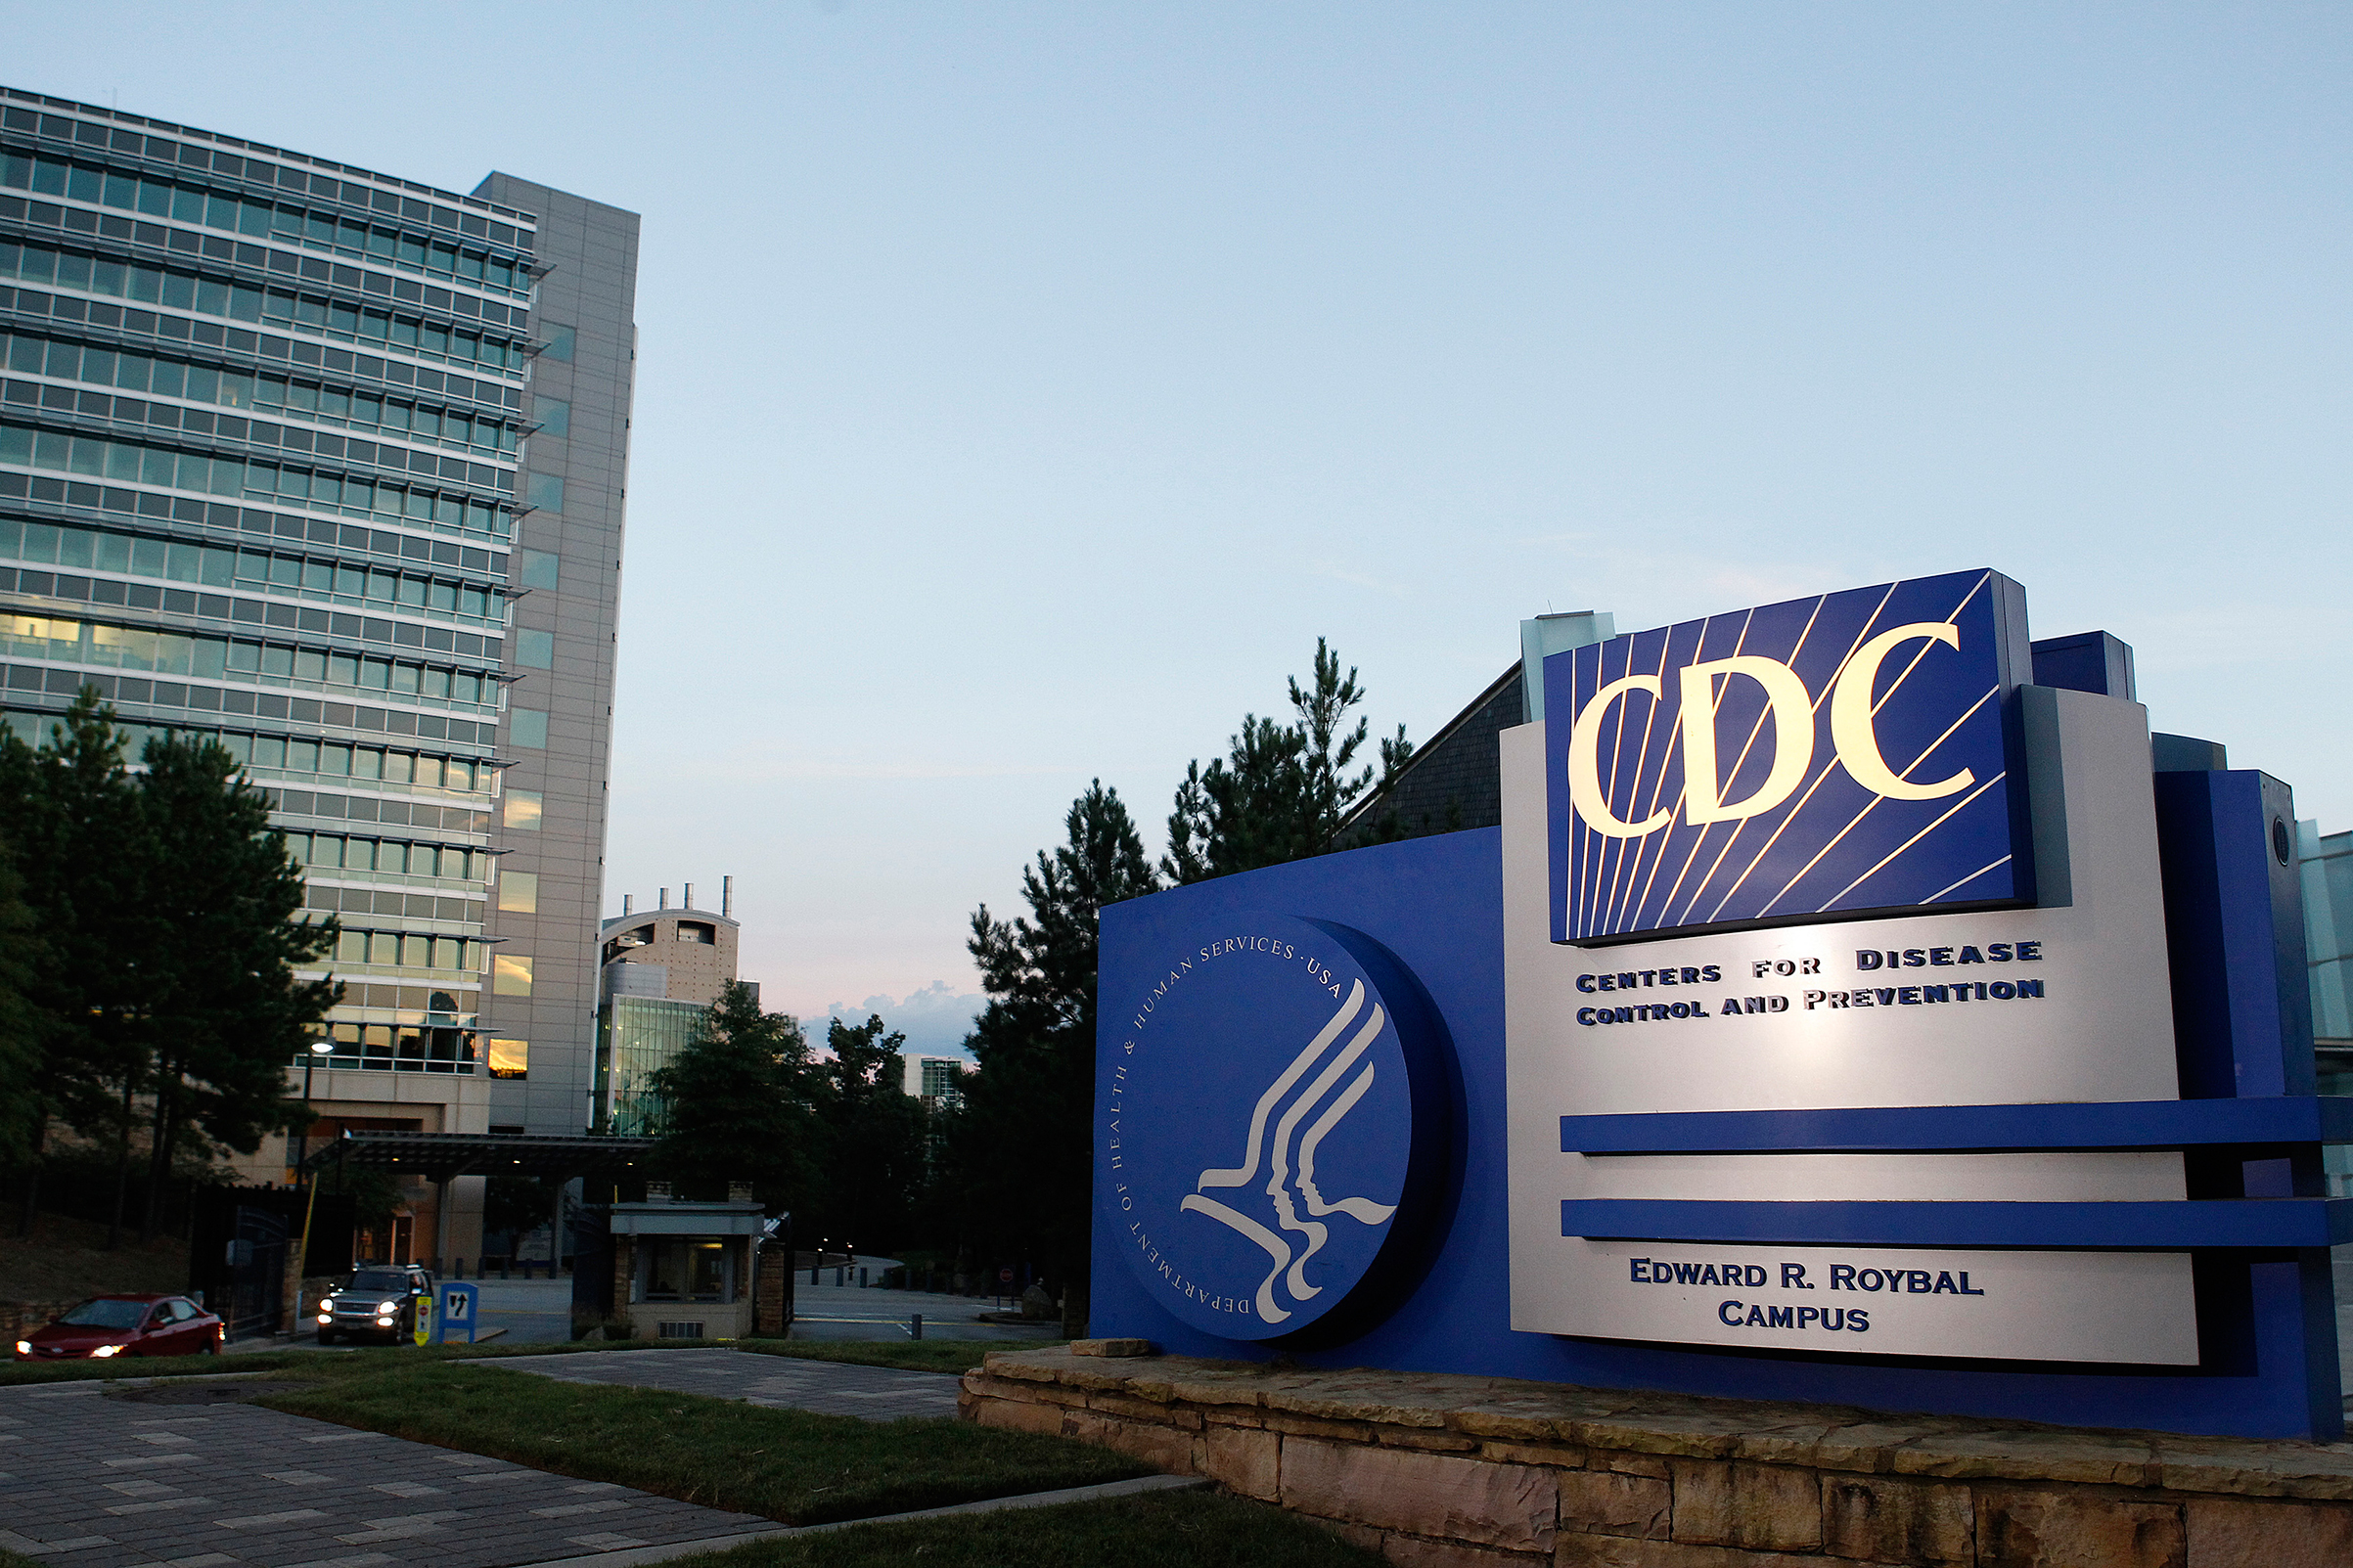 A general view of the Centers for Disease Control and Prevention (CDC) headquarters in Atlanta, Georgia Sept. 30, 2014.